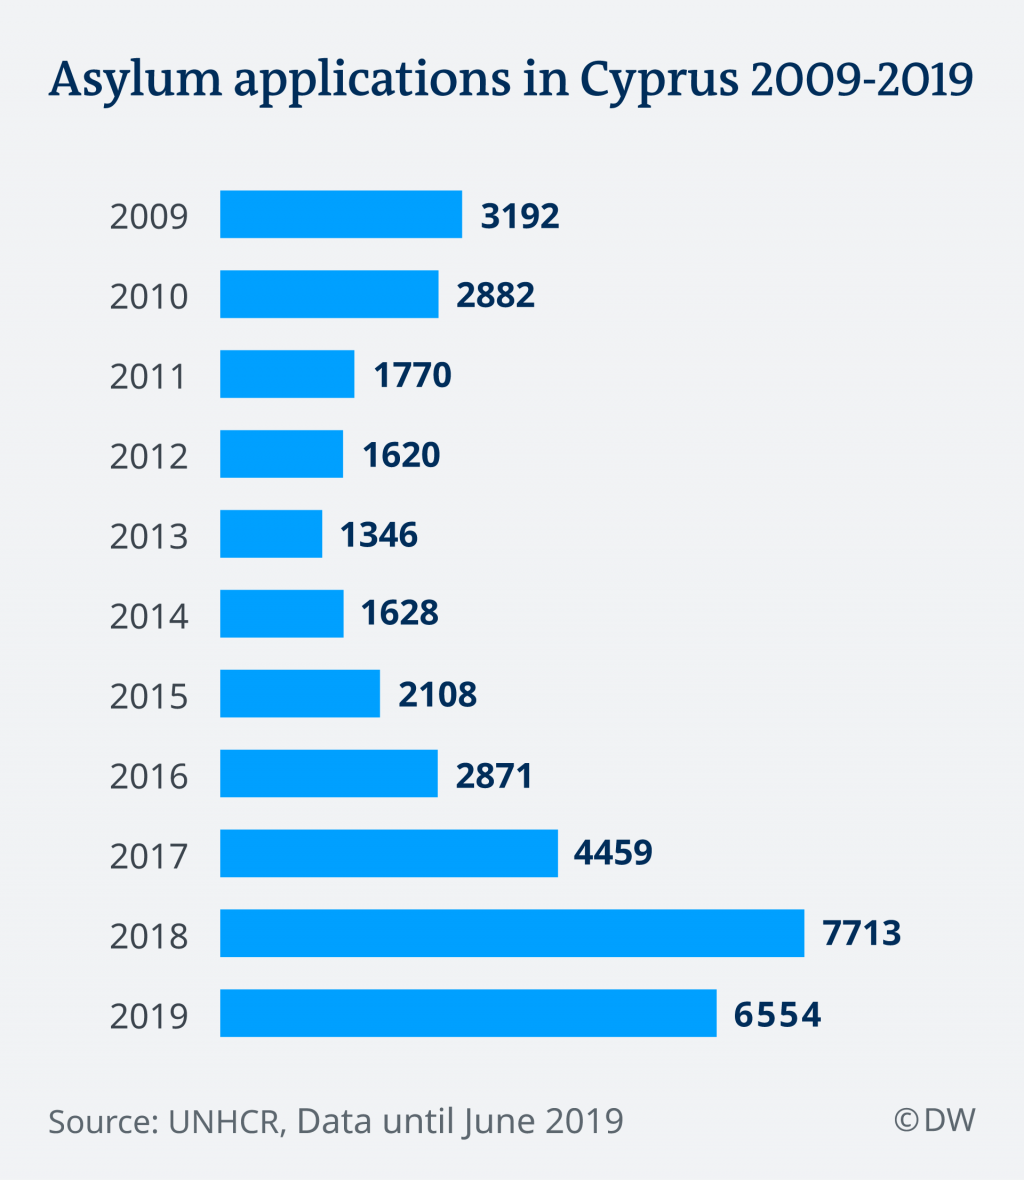 Asylum applications in Cyprus